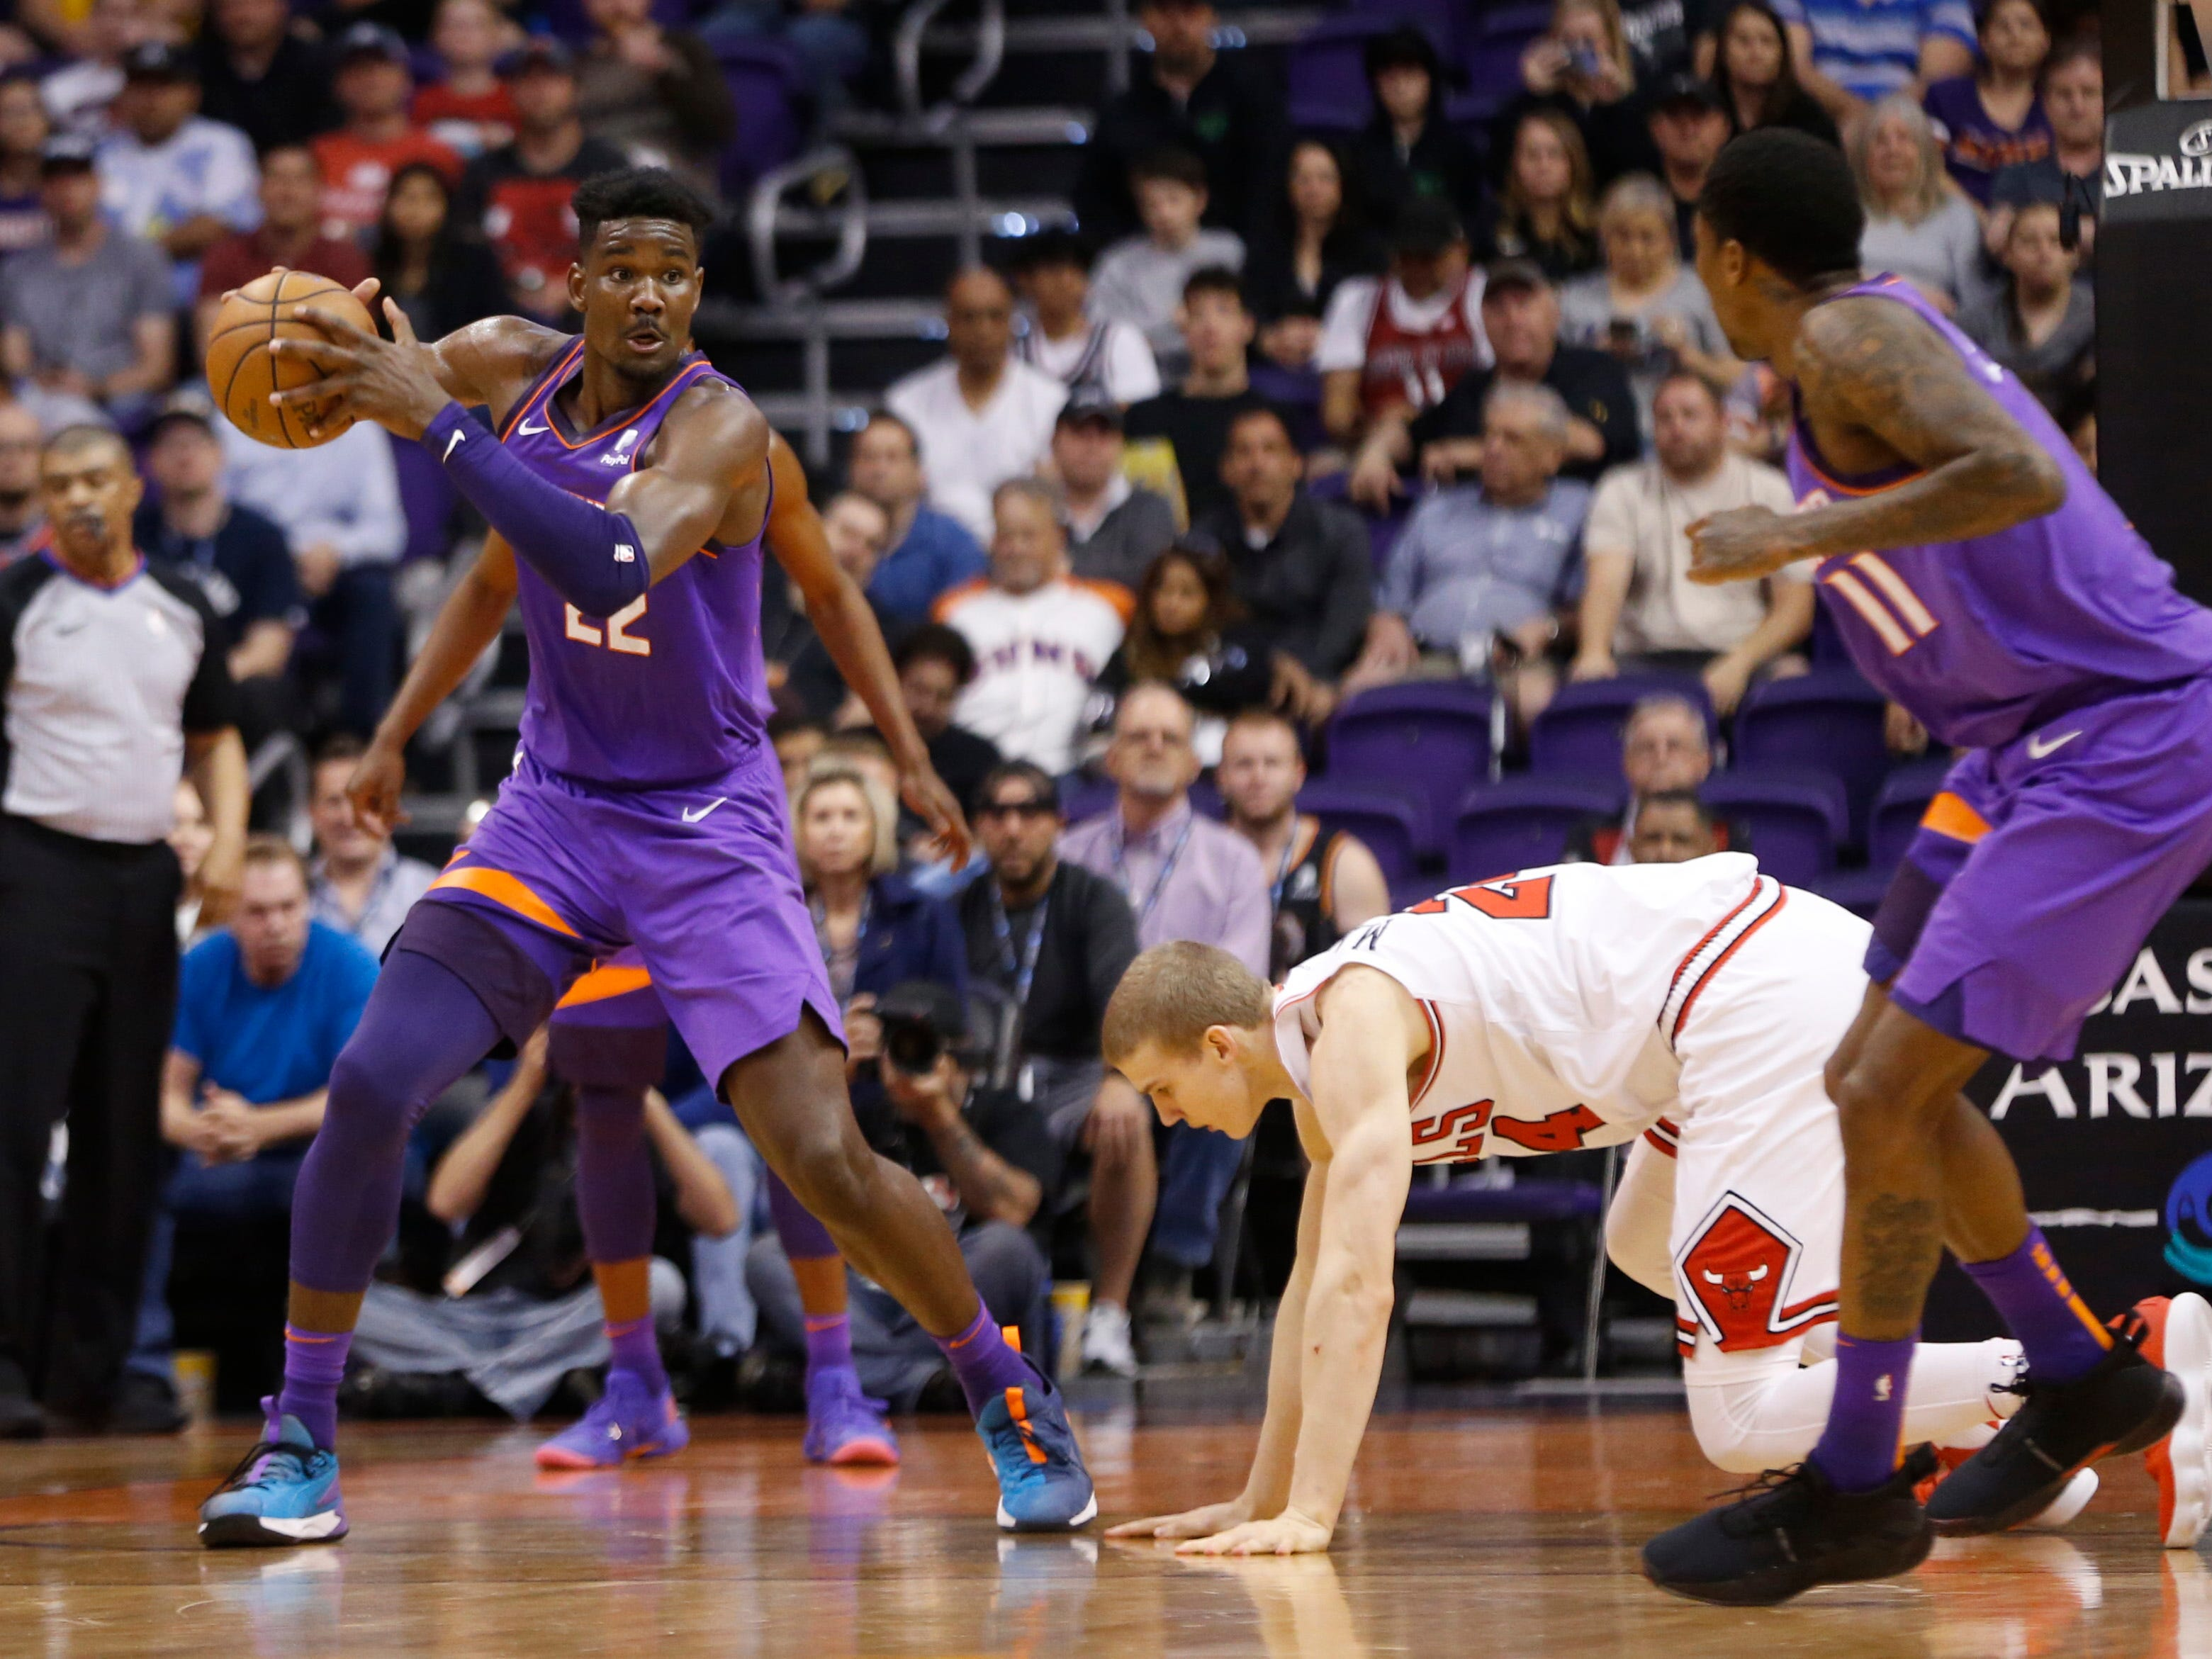 Suns' Deandre Ayton (22) recovers a steal against Bulls' Lauri Markkanen (24) during the first half at Talking Stick Resort Arena in Phoenix, Ariz. on March 18, 2019.